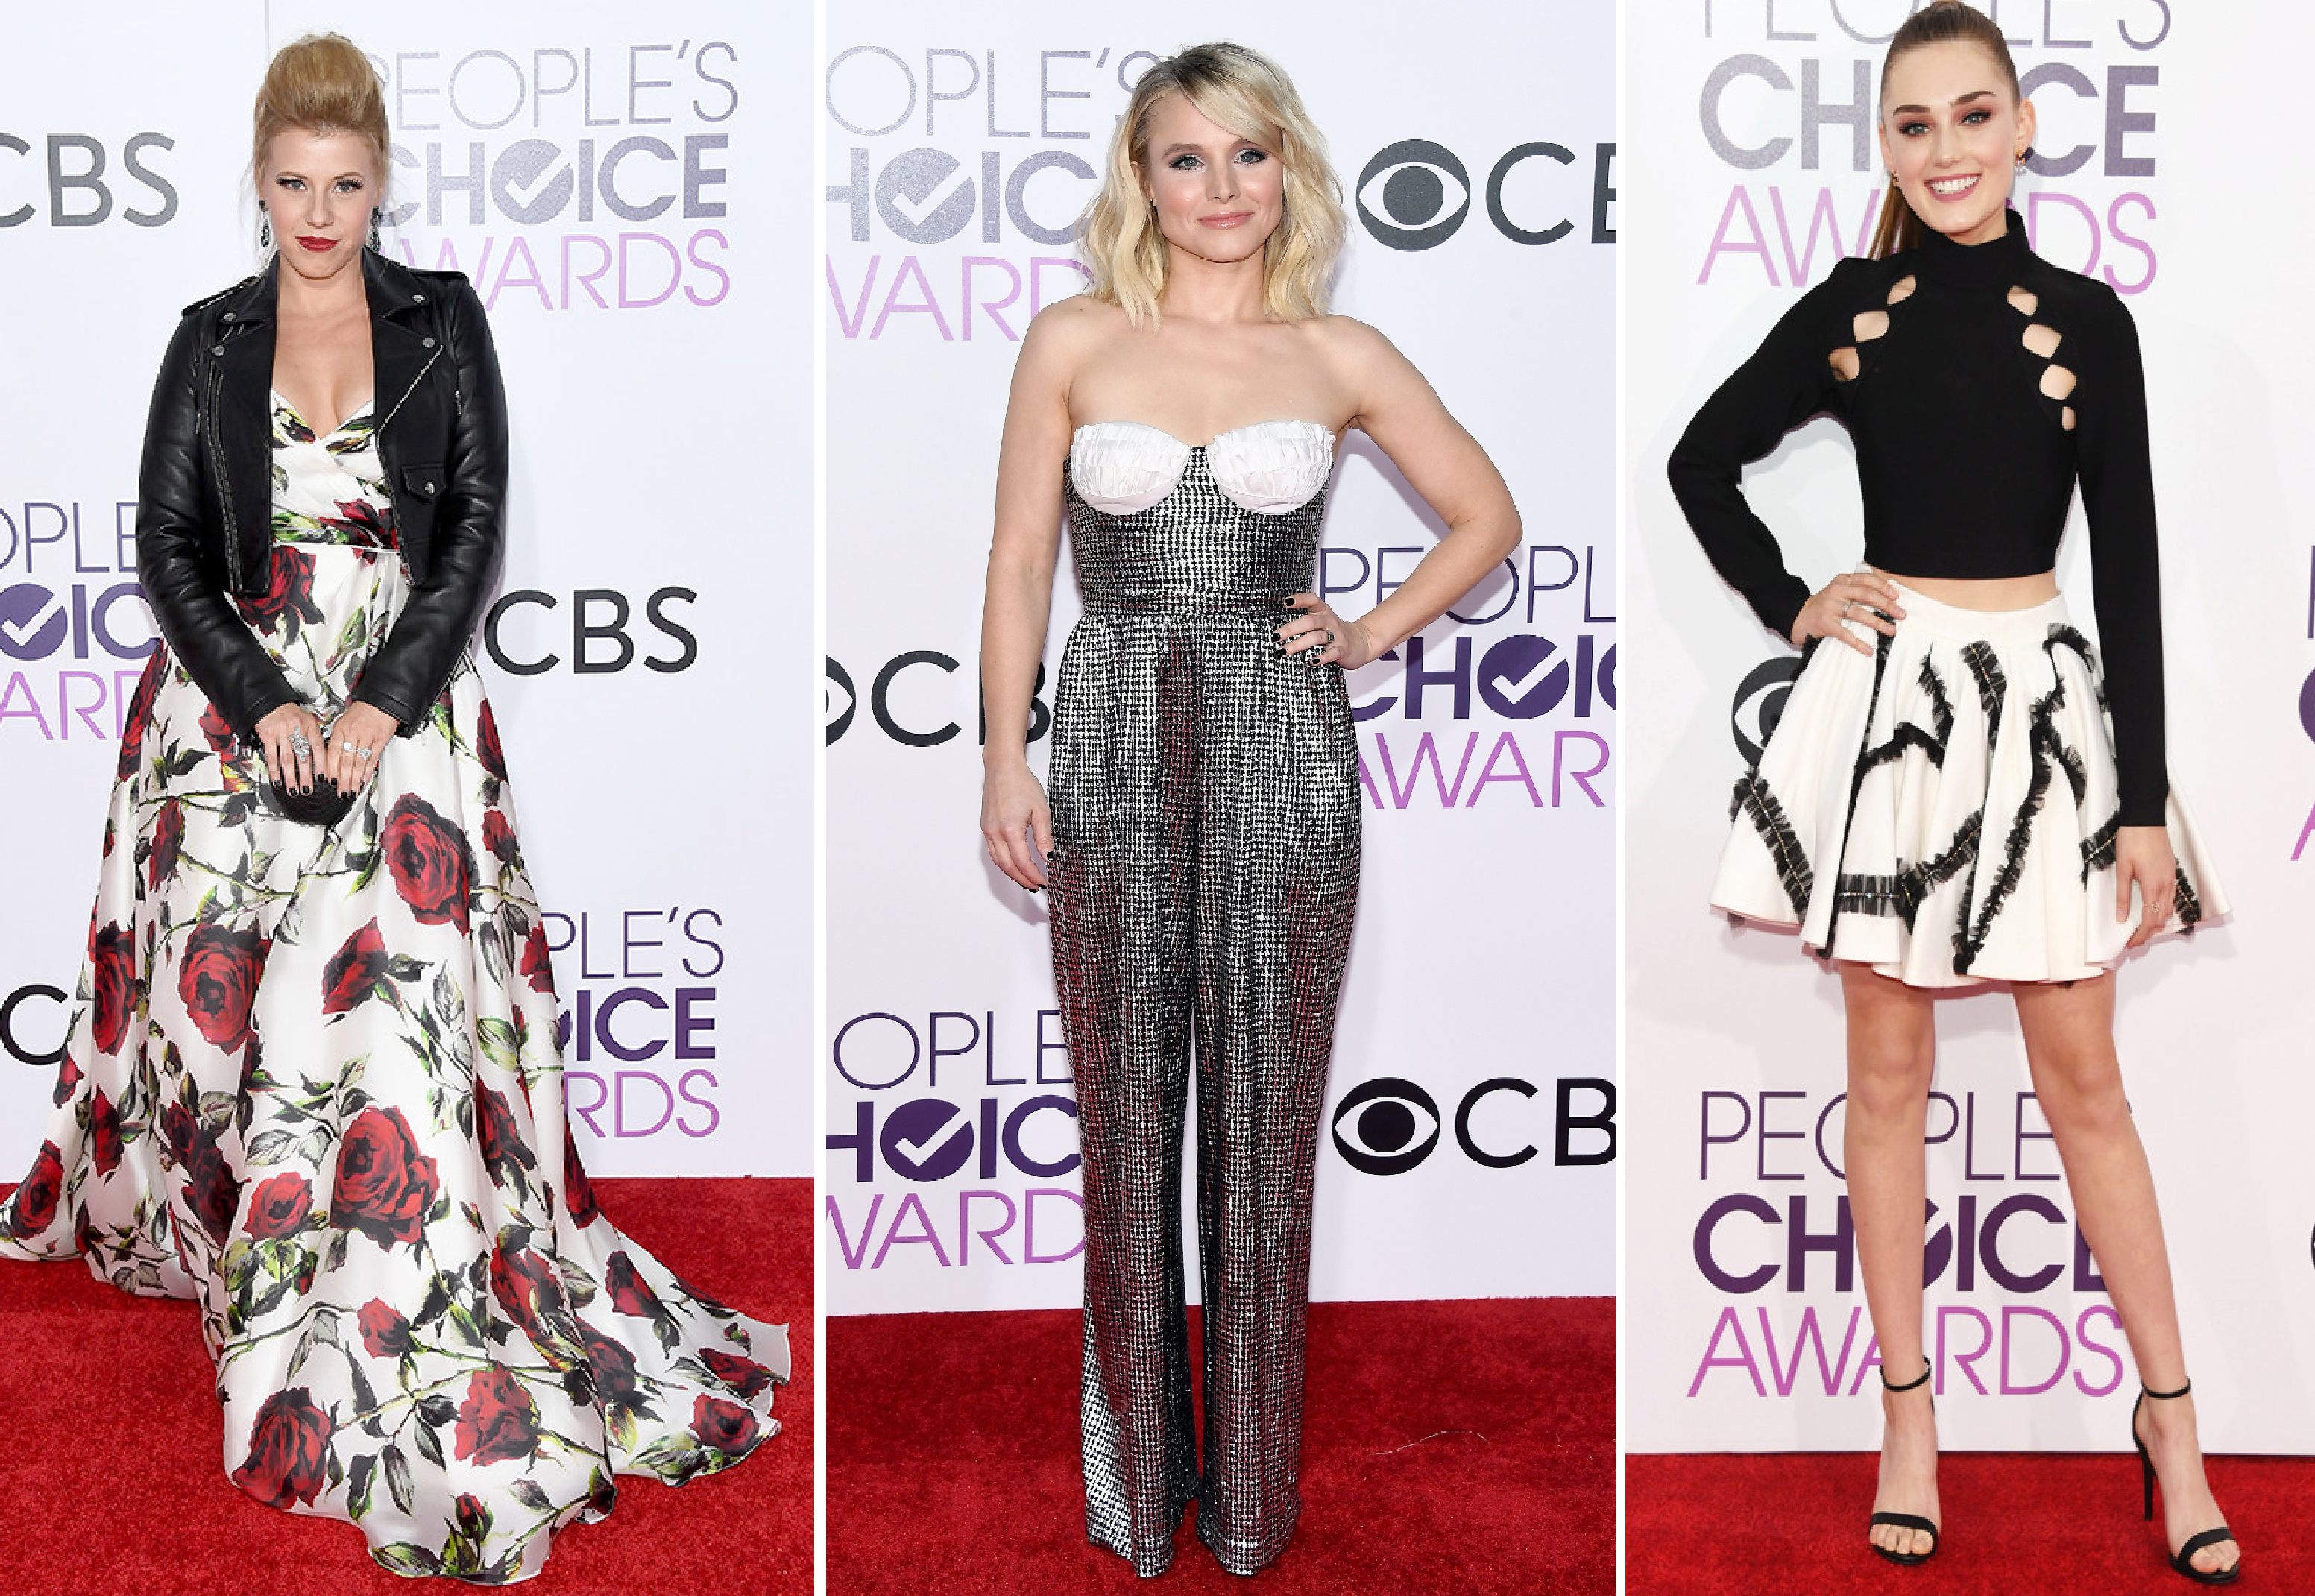 jodie-sweetin-sherri-hill-kristen-bell-rasario-meg-donelly-peoples-choice-awards-2017